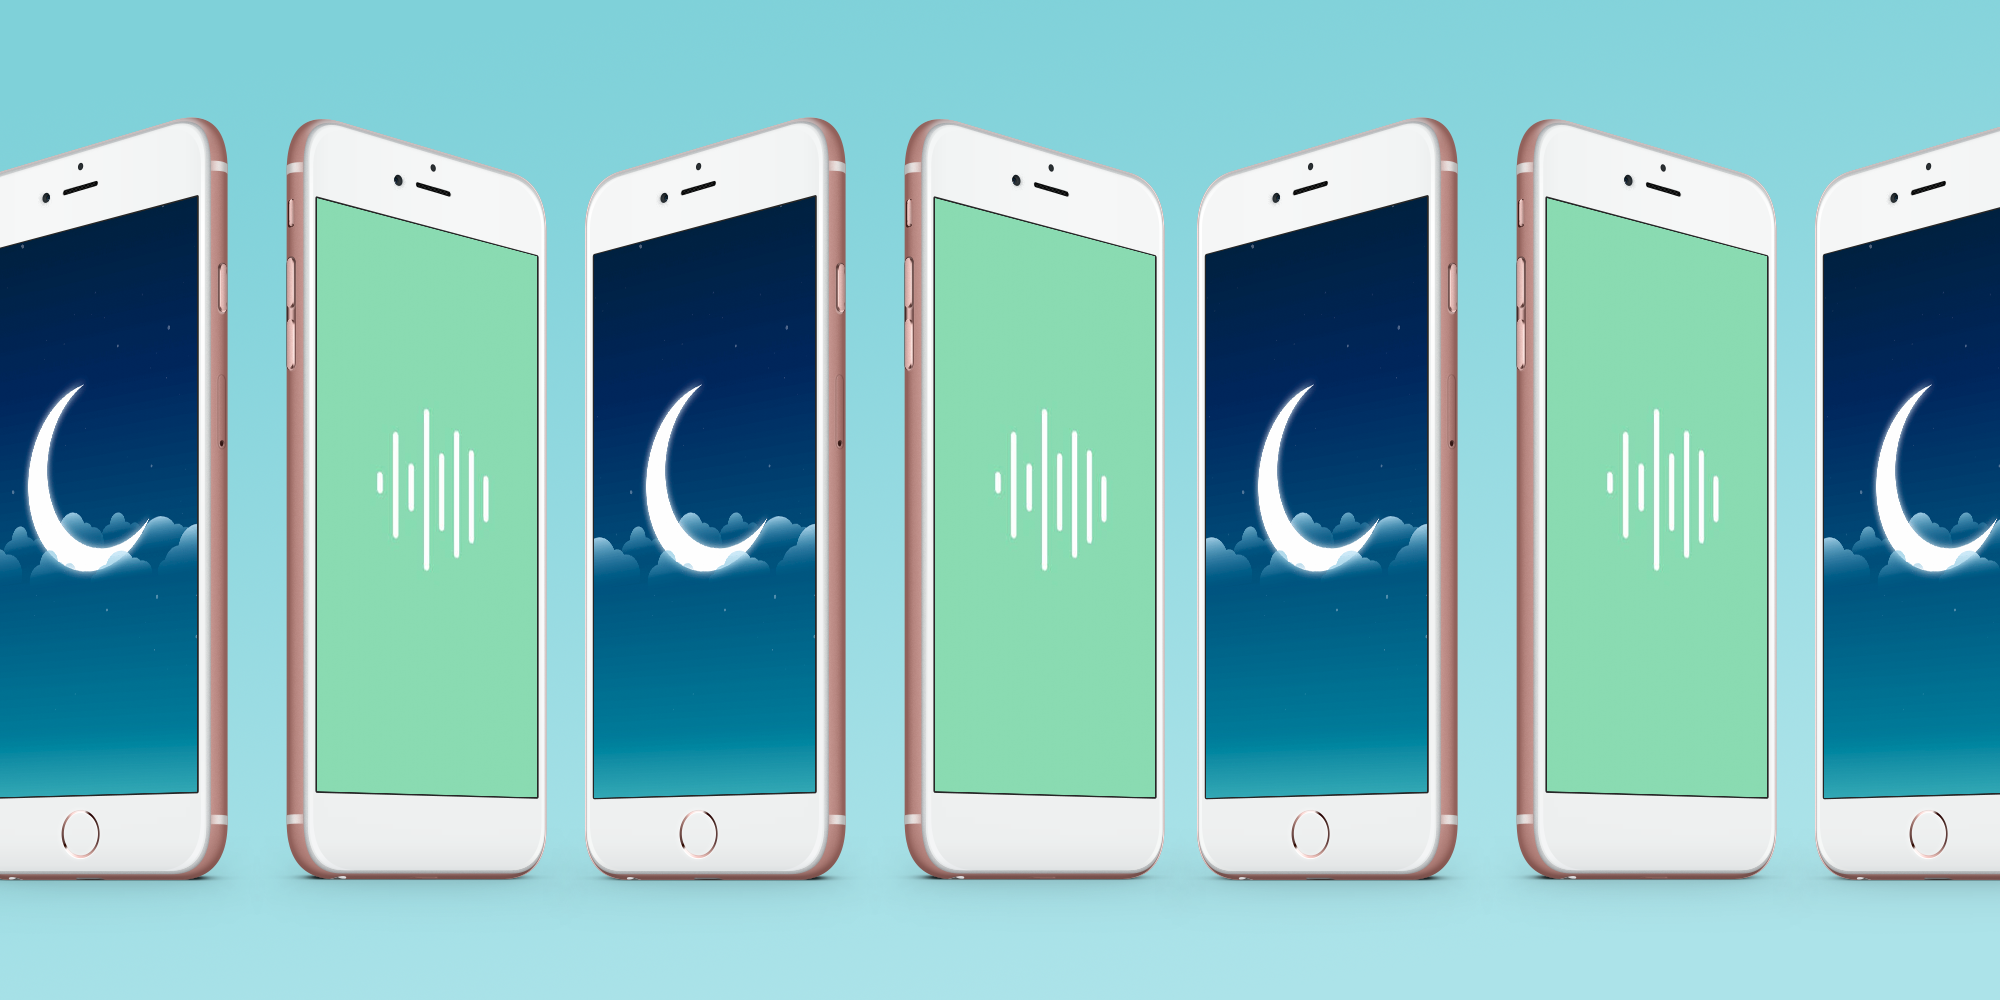 7 Best Sleep Apps 2019 - Phone Apps That Actually Help You Sleep